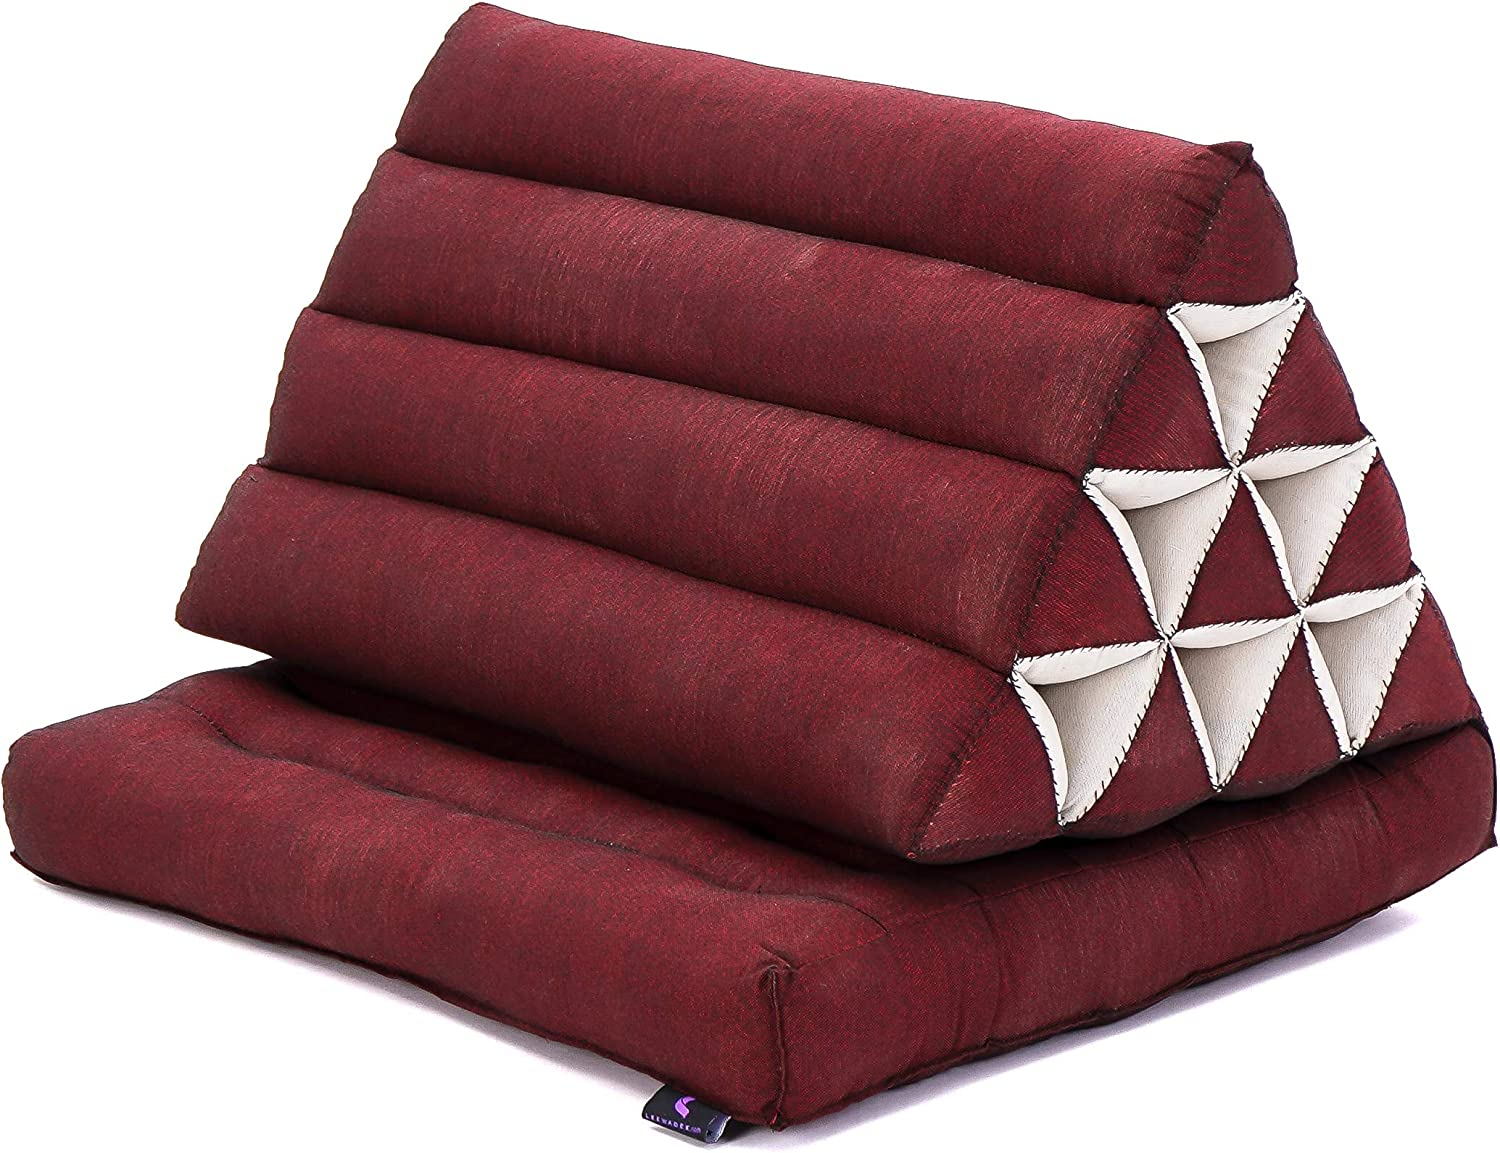 Leewadee Foldout Triangle Thai-Cushion Floor-Seat with Back-Rest Reading Pillow TV Pillow Lounge-r Foldable Out-Door Mattress, 30x20x16 inches, Kapok, red